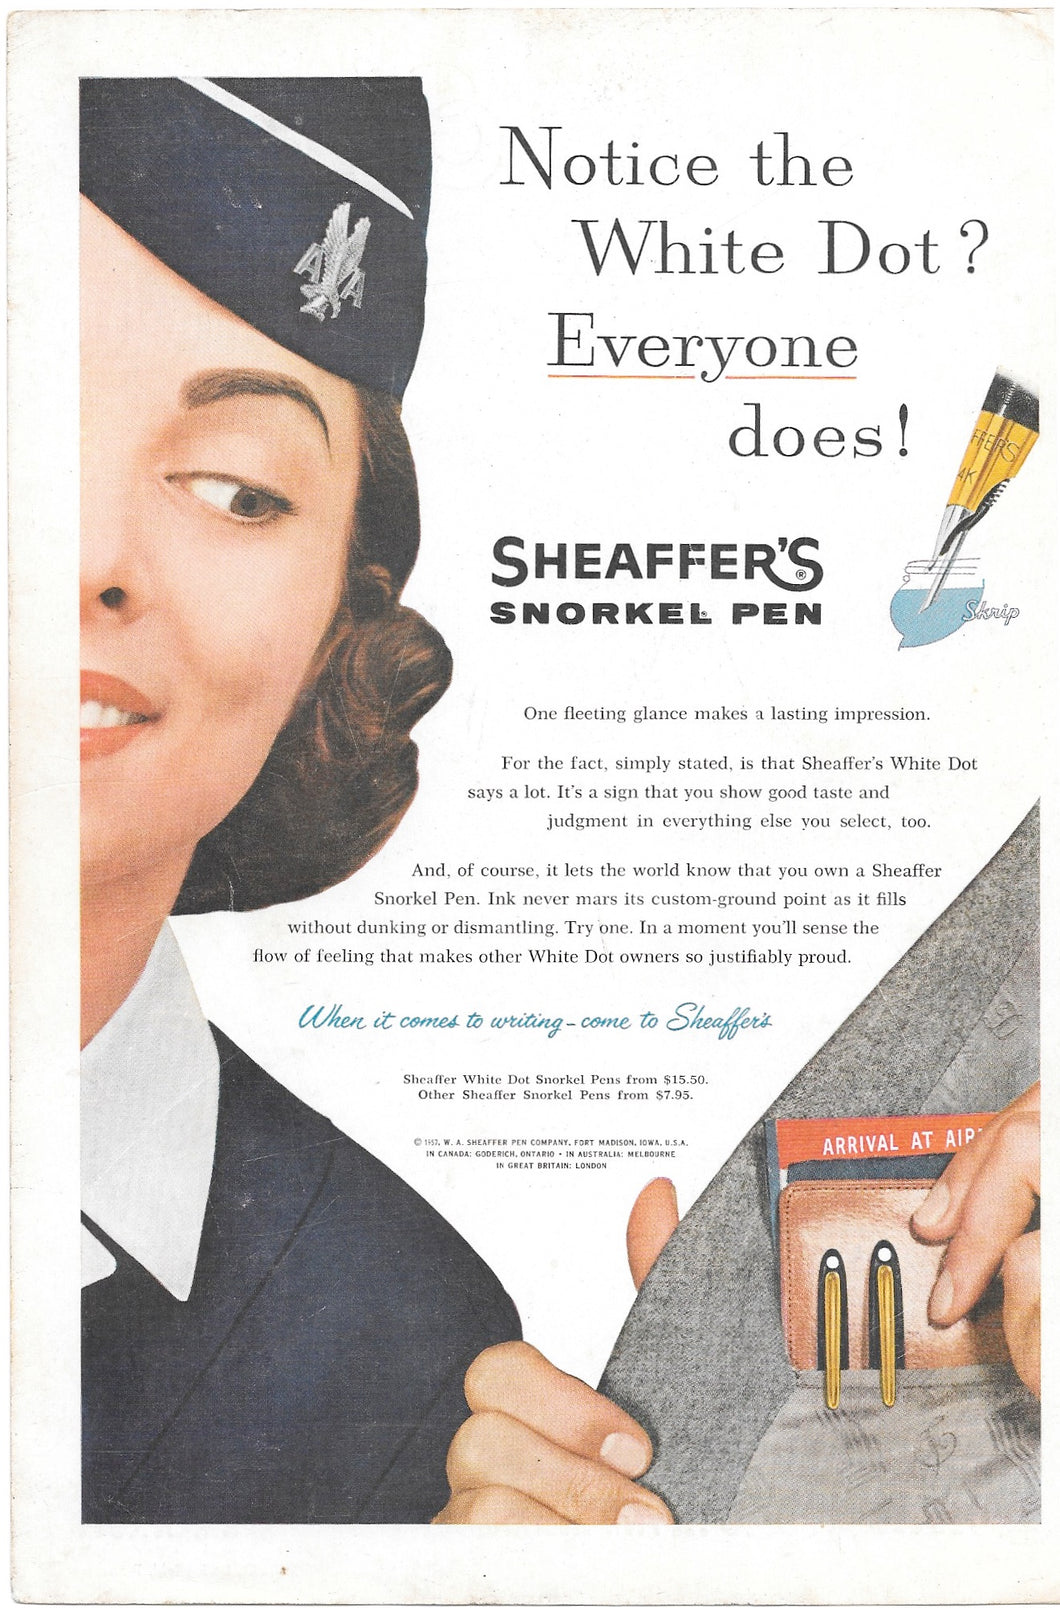 National Geographic Advertising, Sheaffer's Snorkel